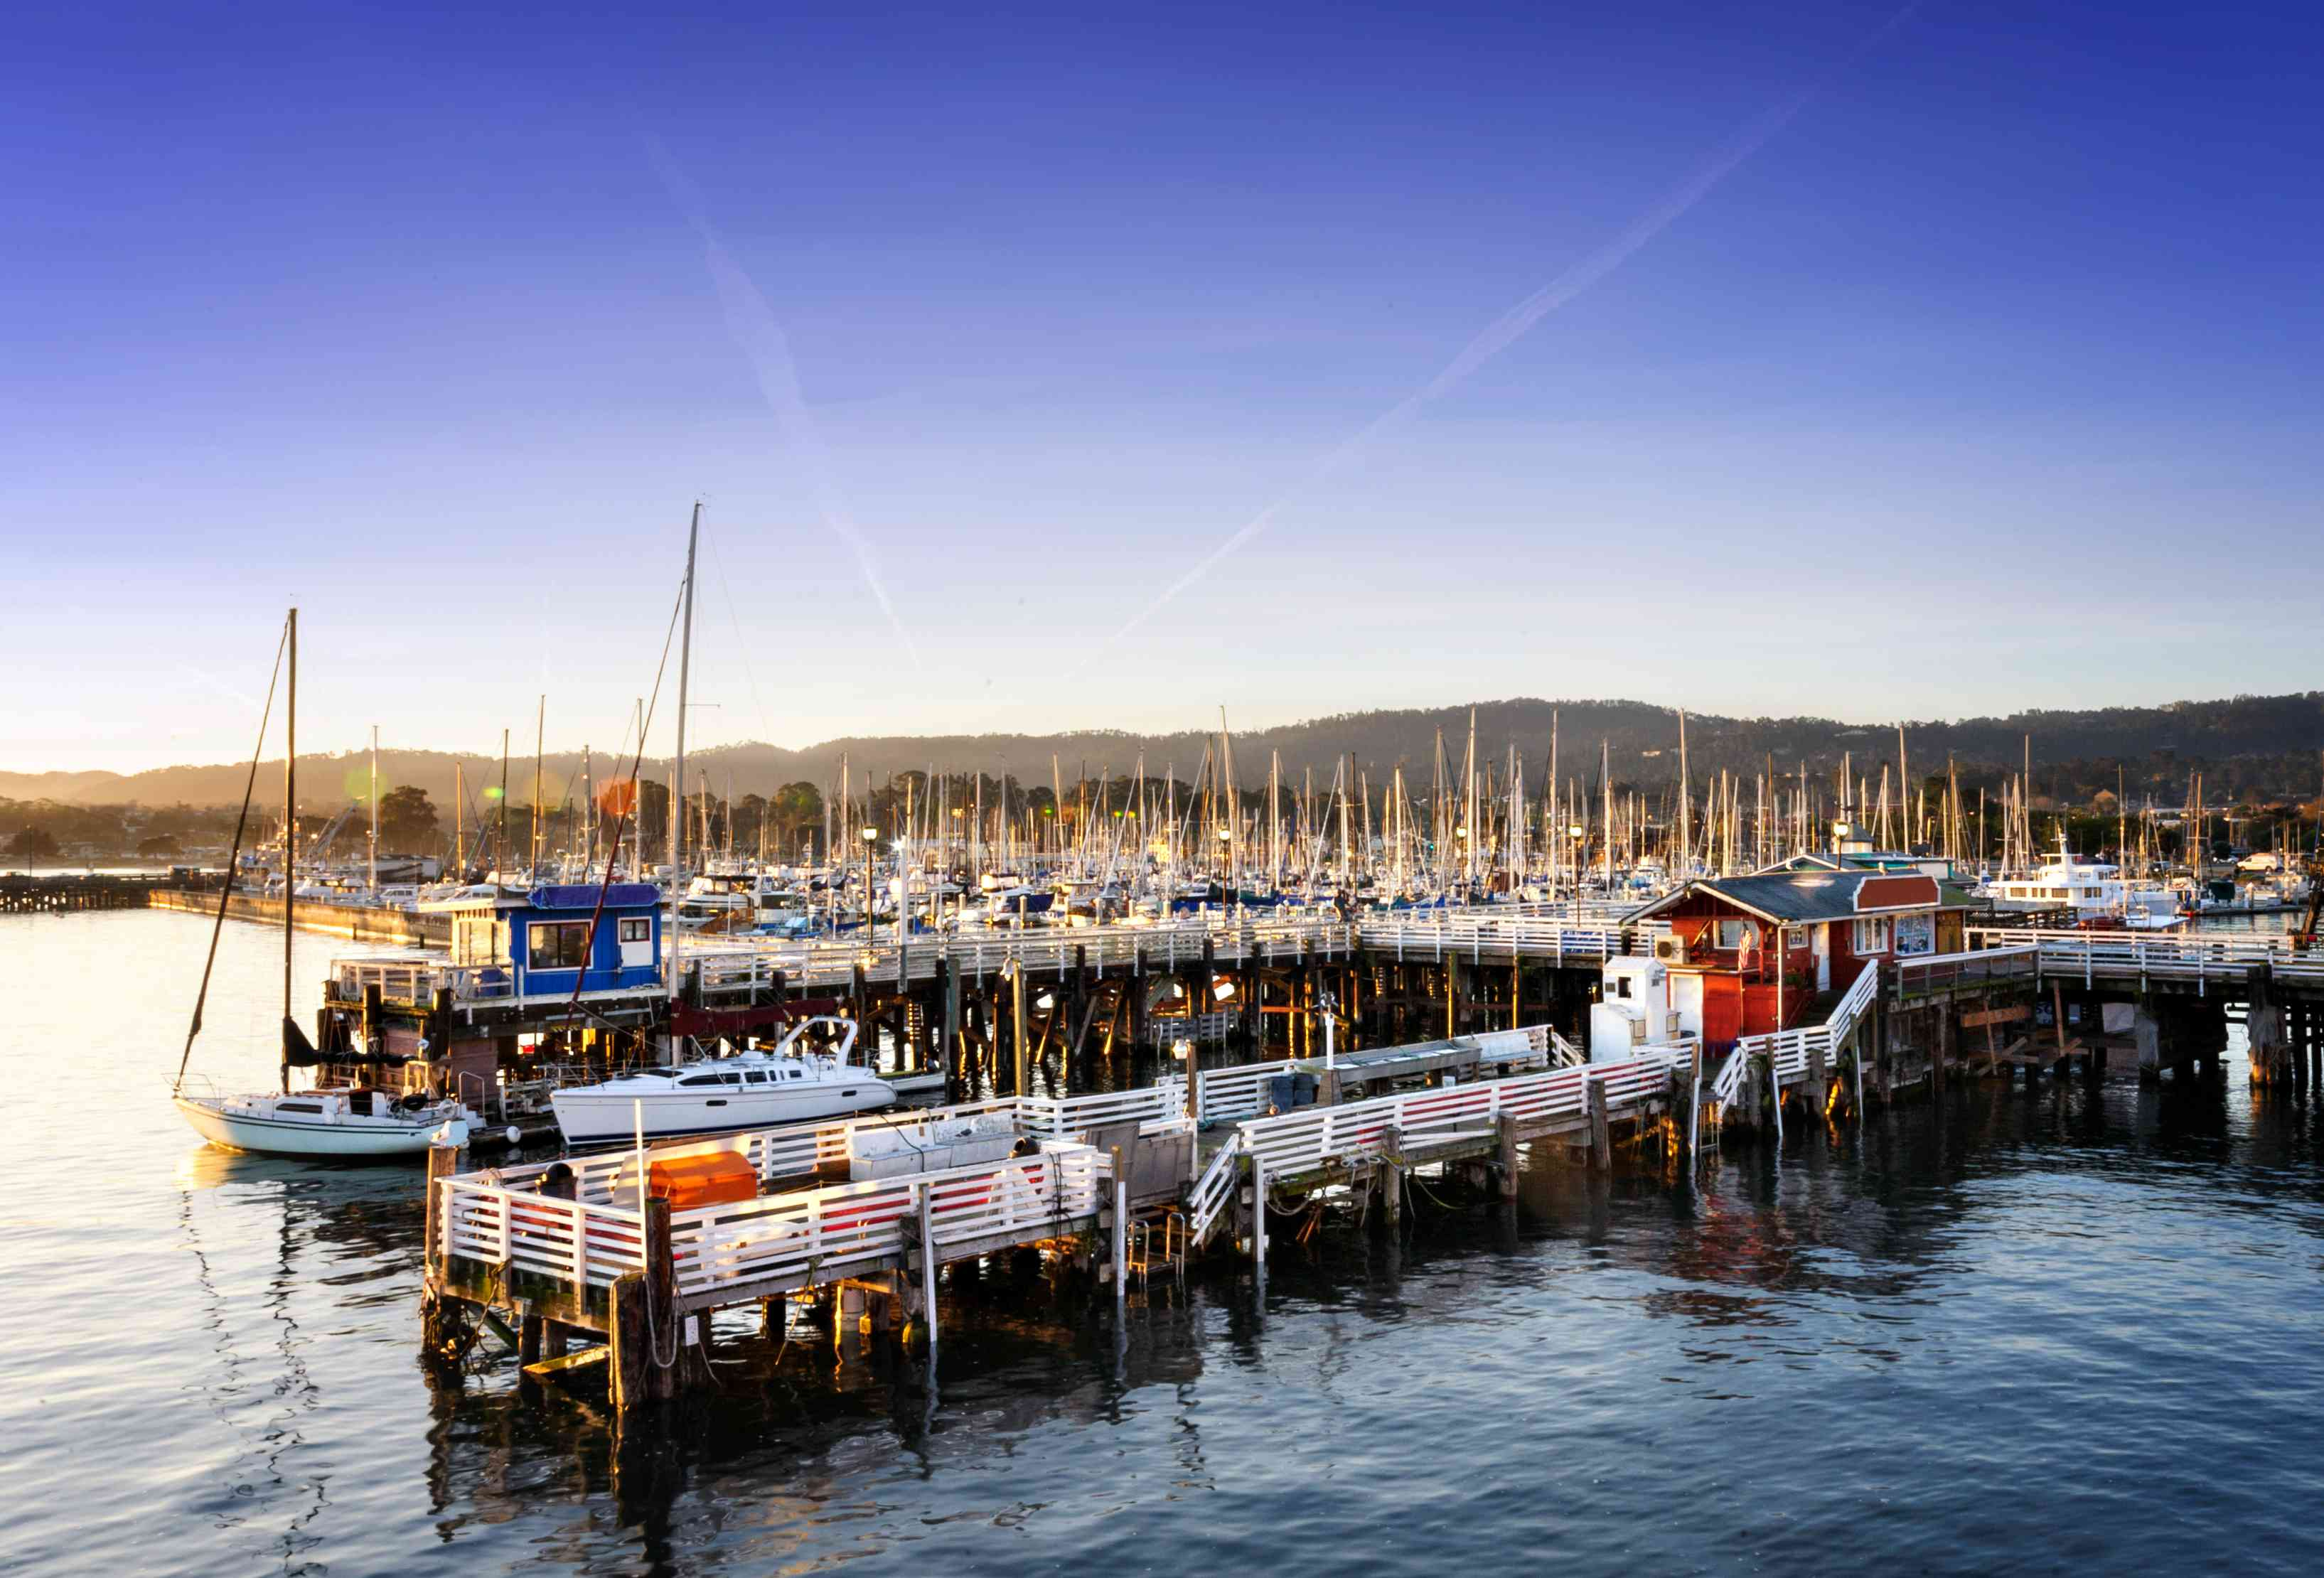 Fisherman's Wharf and Whale Tours in Monterey